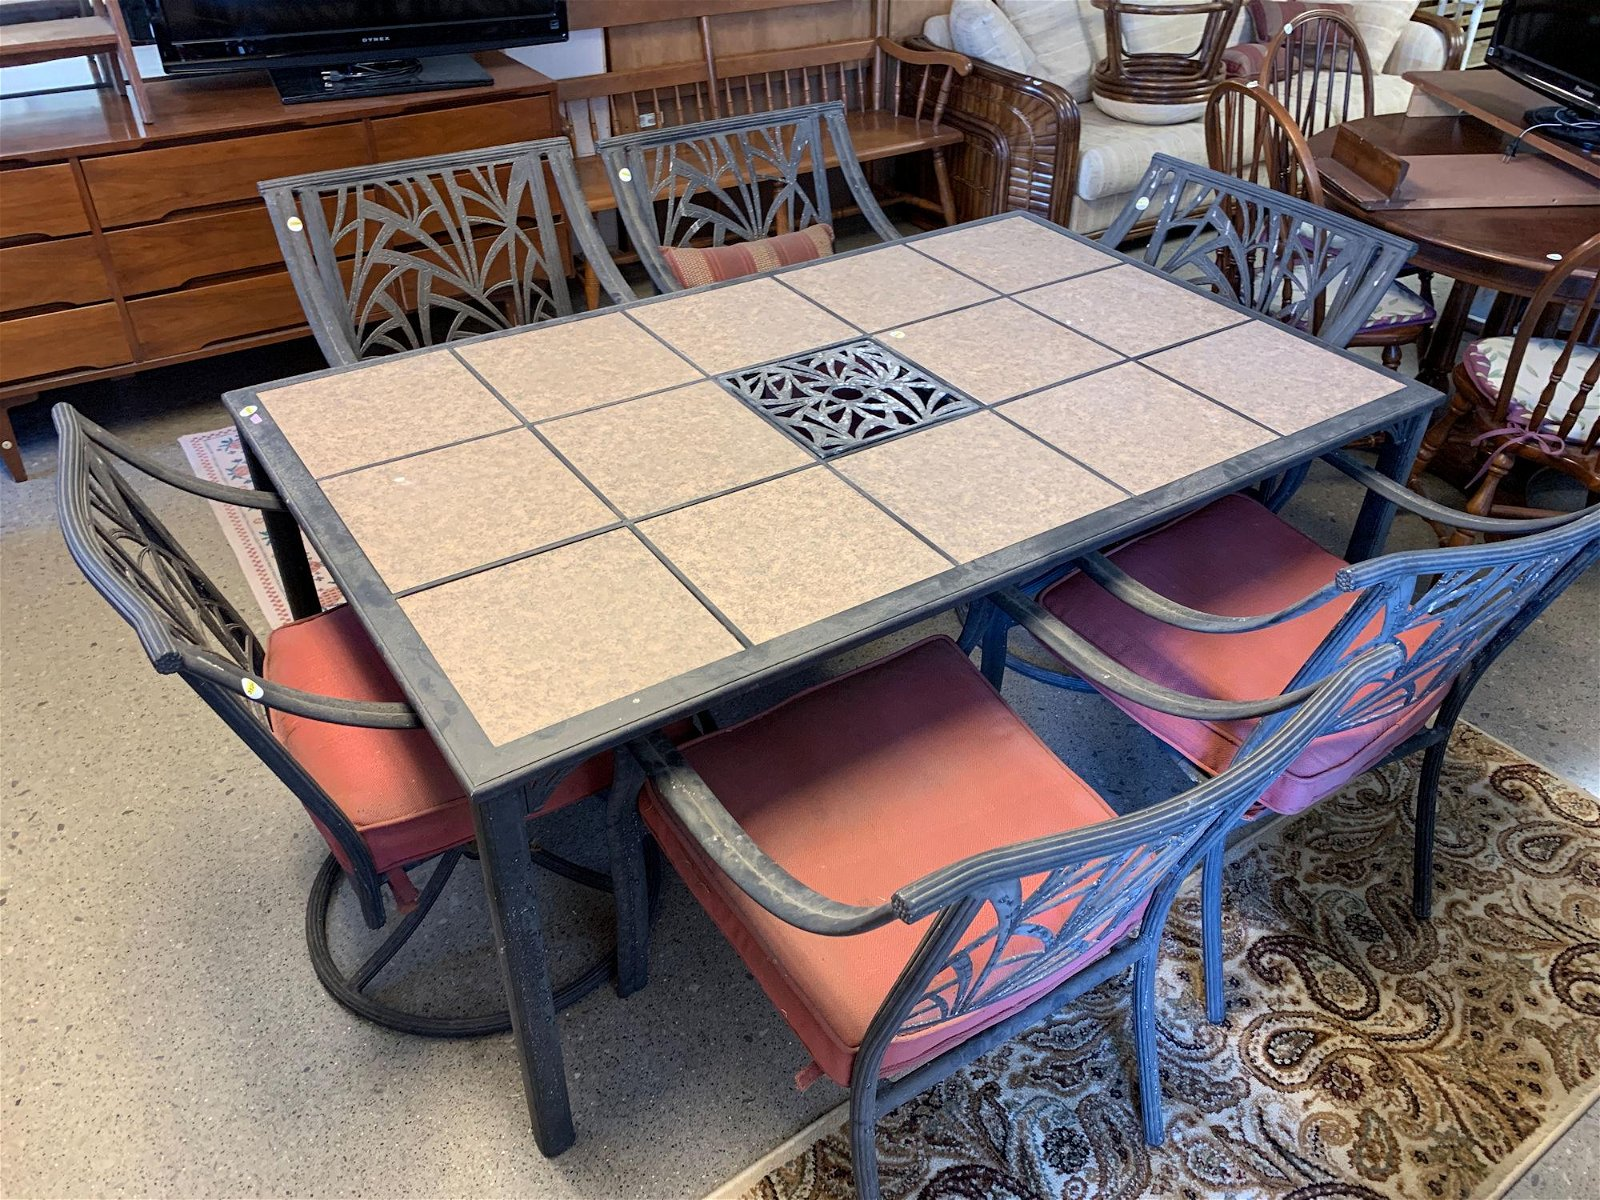 PATIO TABLE, WITH GRANITE INSERTS, 6 CHAIRS